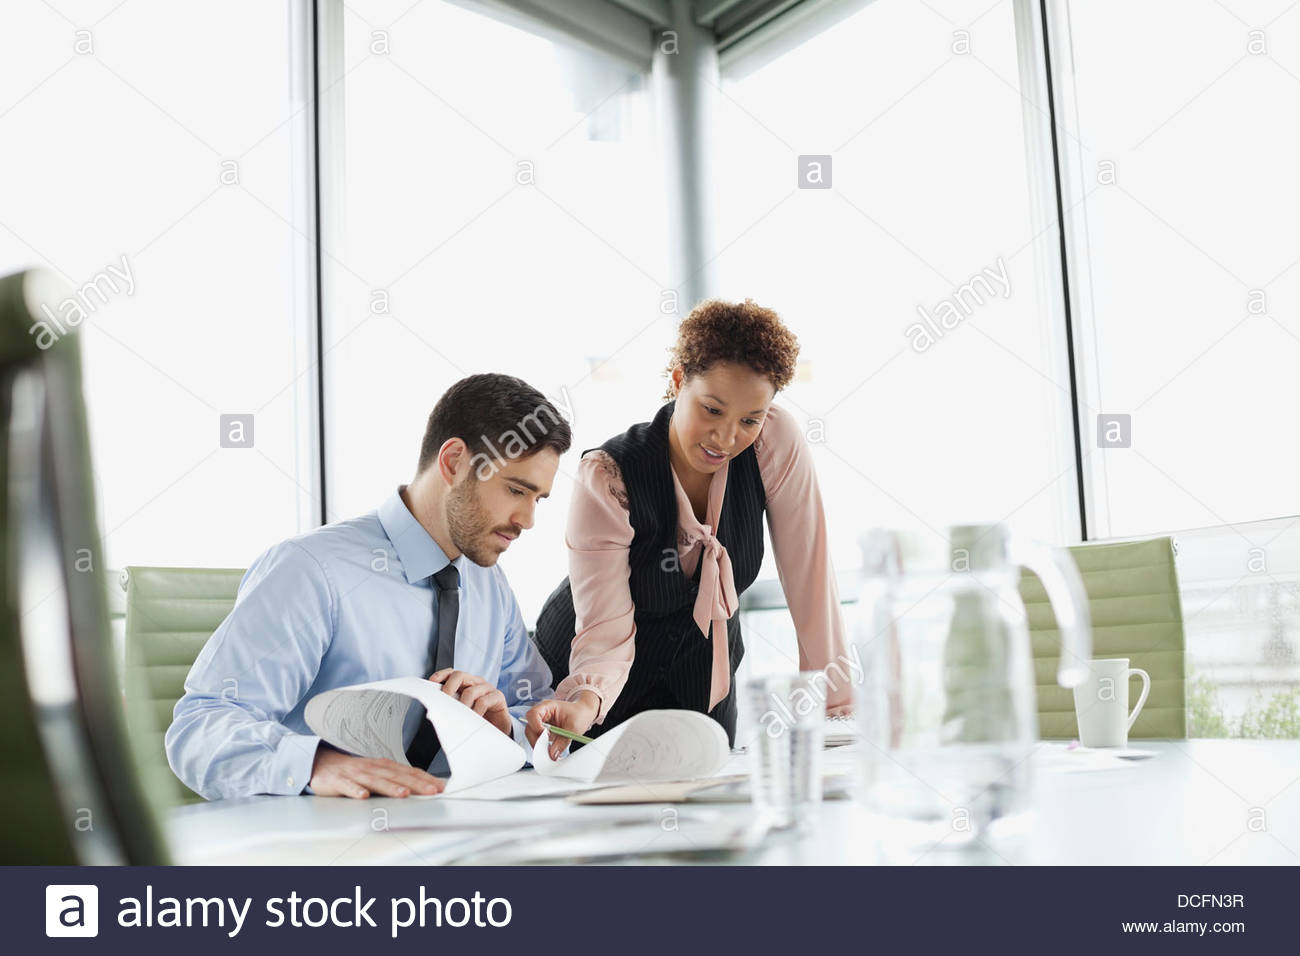 Business colleagues working together in boardroom - Stock Image